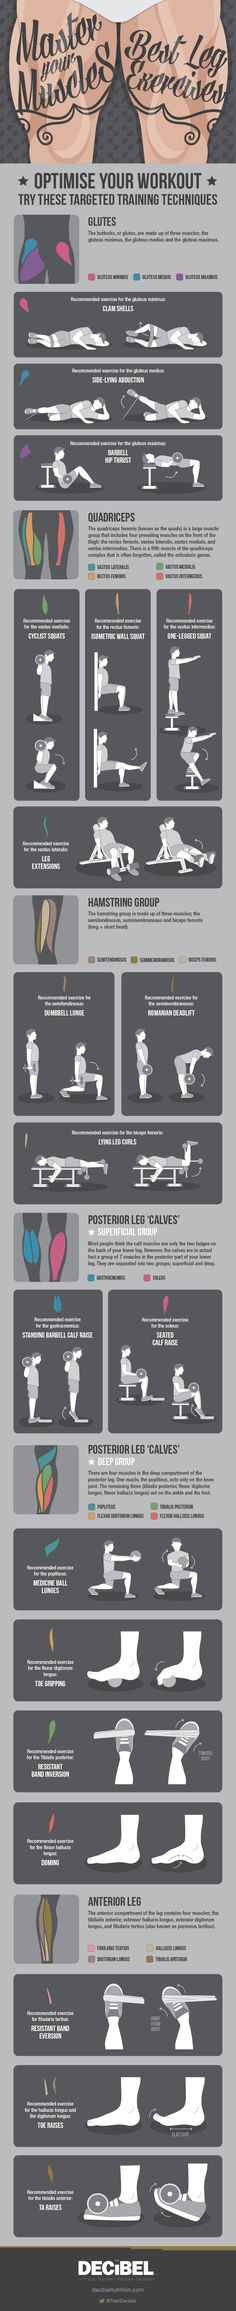 Body in 3 Weeks Six-pack abs, gain muscle or weight loss, these workout plan is great for beginners men and women.Six-pack abs, gain muscle or weight loss, these workout plan is great for beginners men and women. Fitness Workouts, Yoga Fitness, Fitness Motivation, Health Fitness, Fitness Plan, Leg Workouts, Lifting Motivation, Health Diet, Fitness Diet